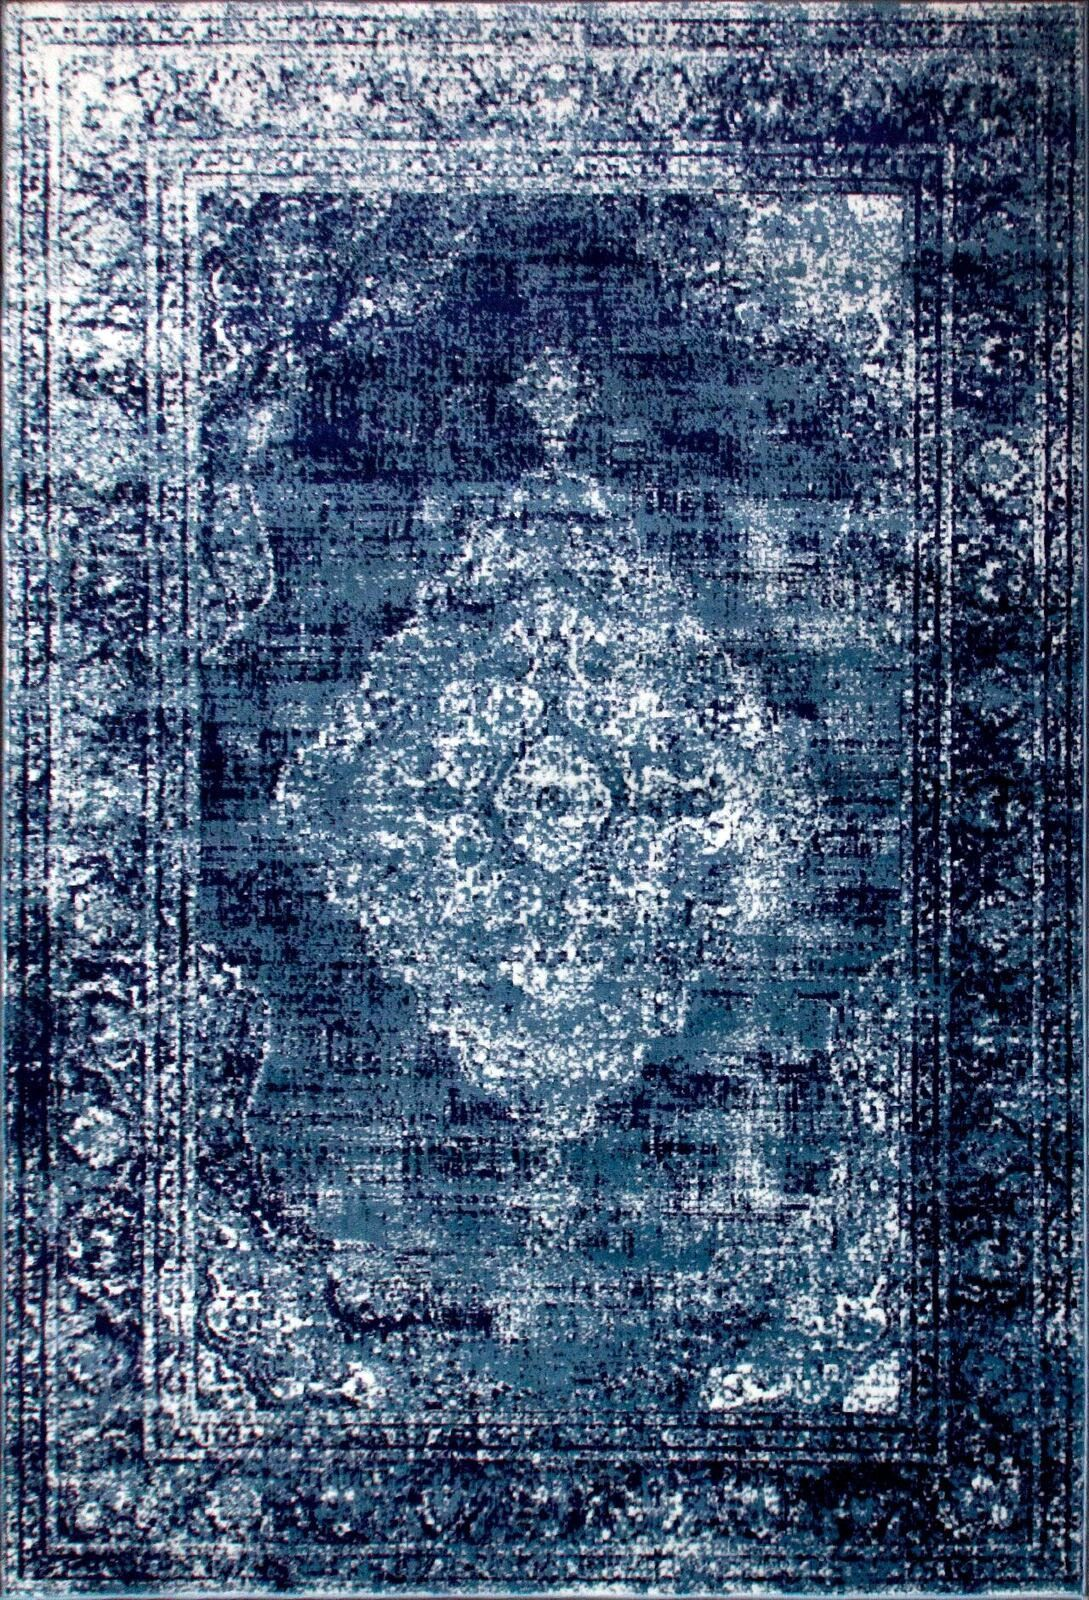 Http Www Ebay Co Uk Itm Traditional Vintage Style Persian Rug Design Oriental Faded Navy Blue Carpet 4014627035 Rugs On Carpet Navy Blue Rug Blue Persian Rug